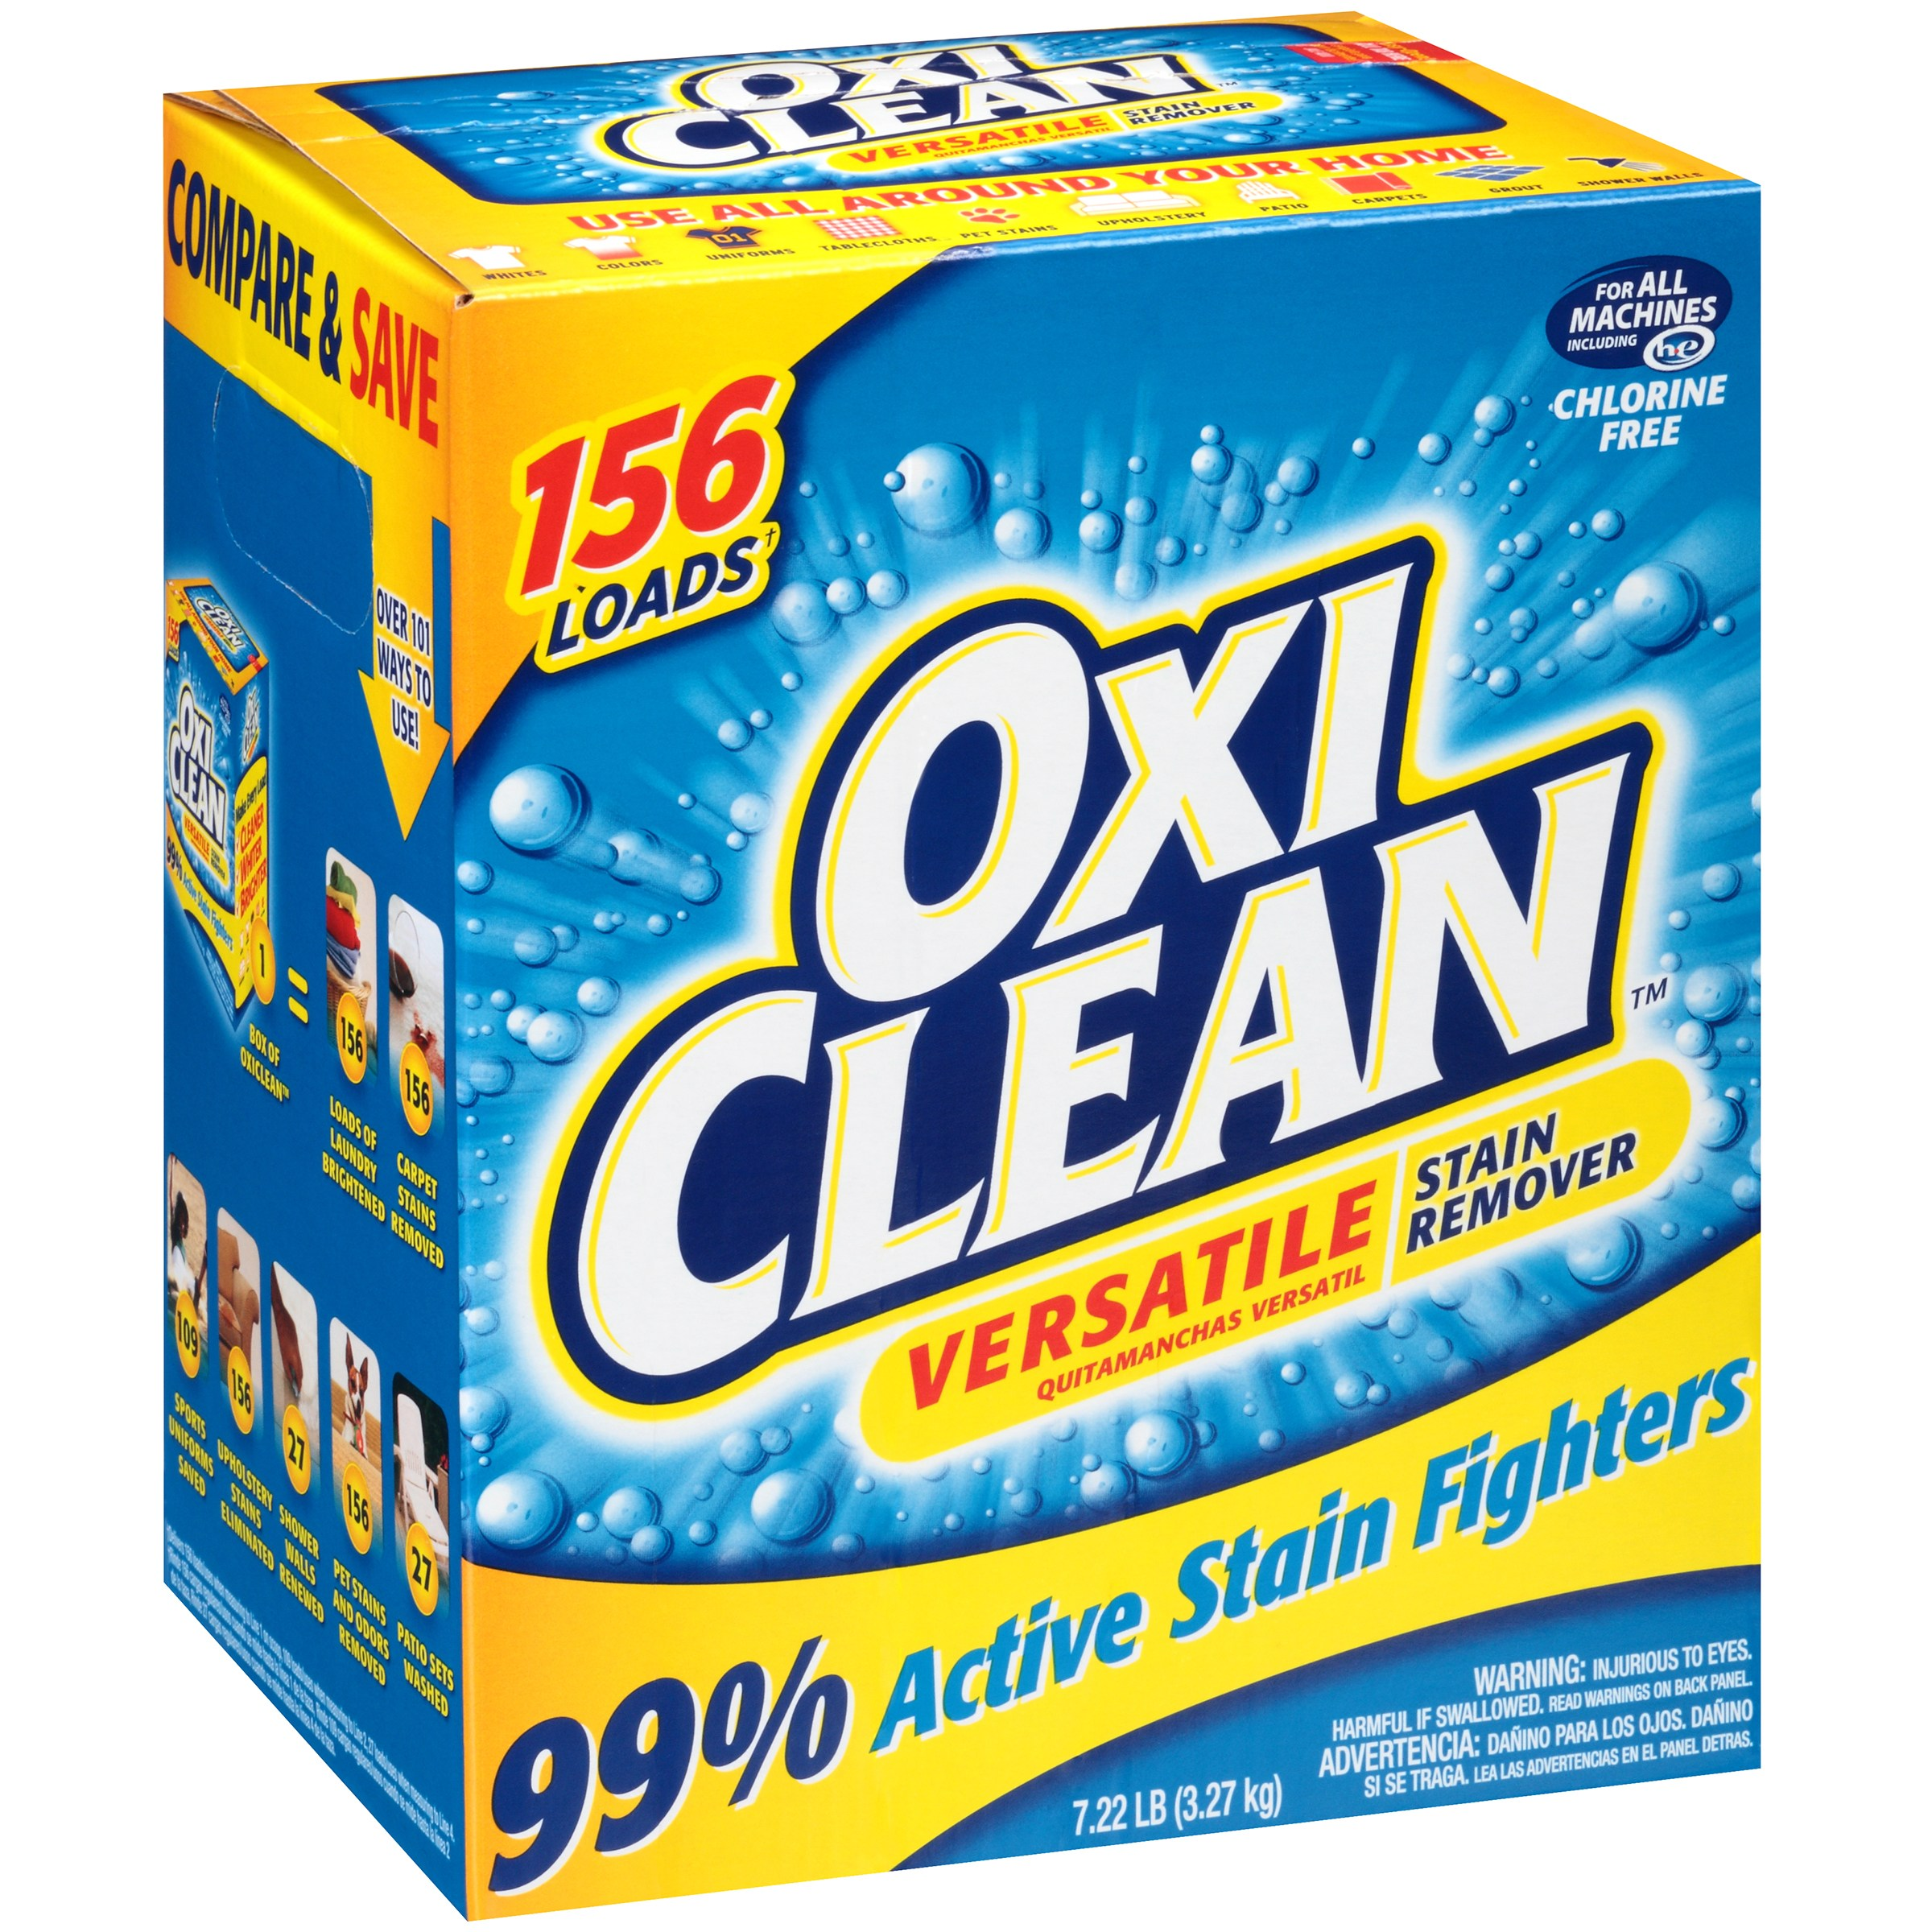 OxiClean Versatile Stain Remover, 115.52 Oz